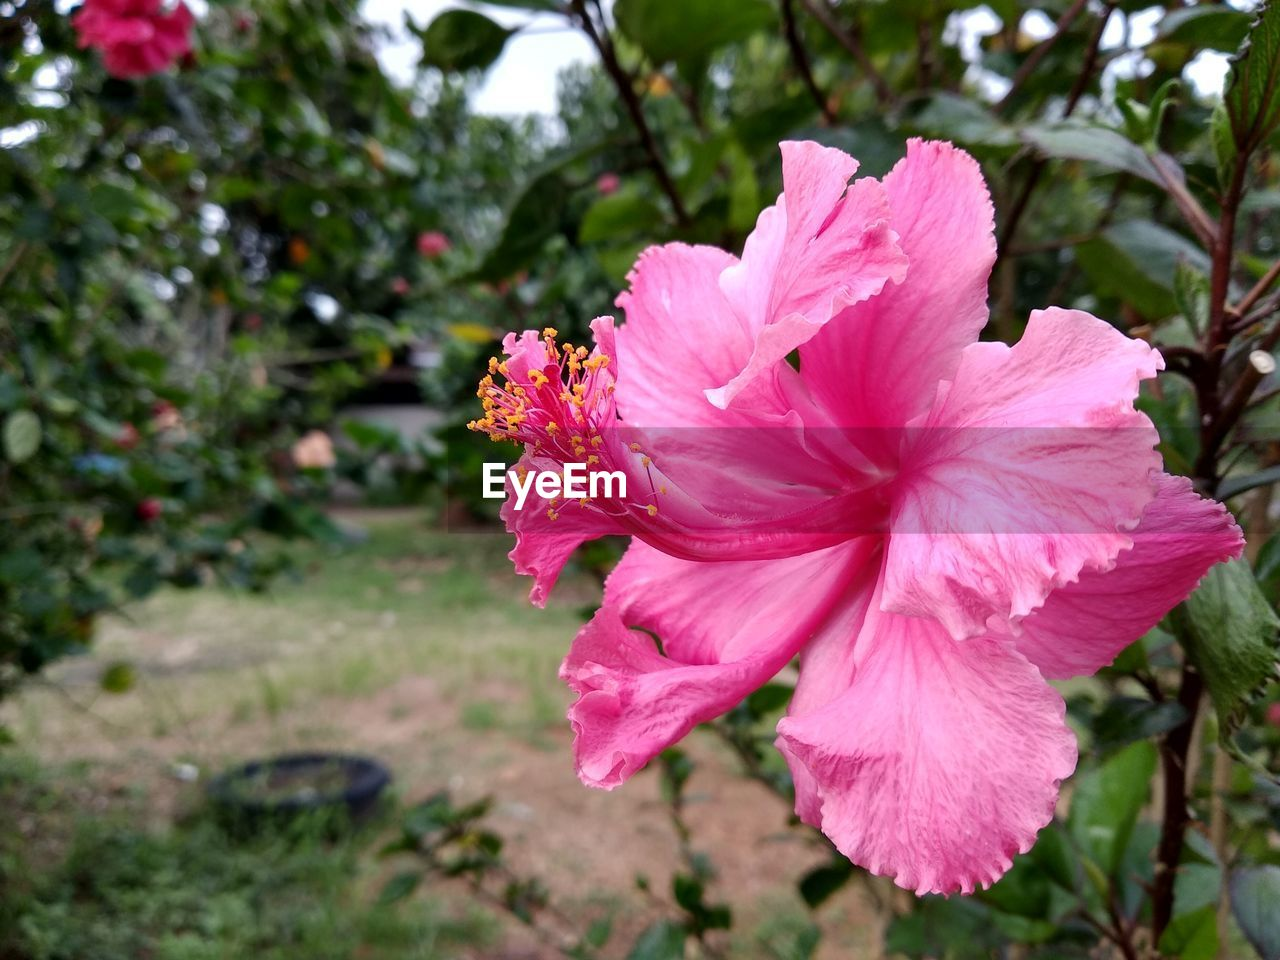 flower, flowering plant, petal, plant, freshness, vulnerability, fragility, beauty in nature, inflorescence, flower head, pink color, growth, close-up, nature, focus on foreground, day, hibiscus, no people, outdoors, pollen